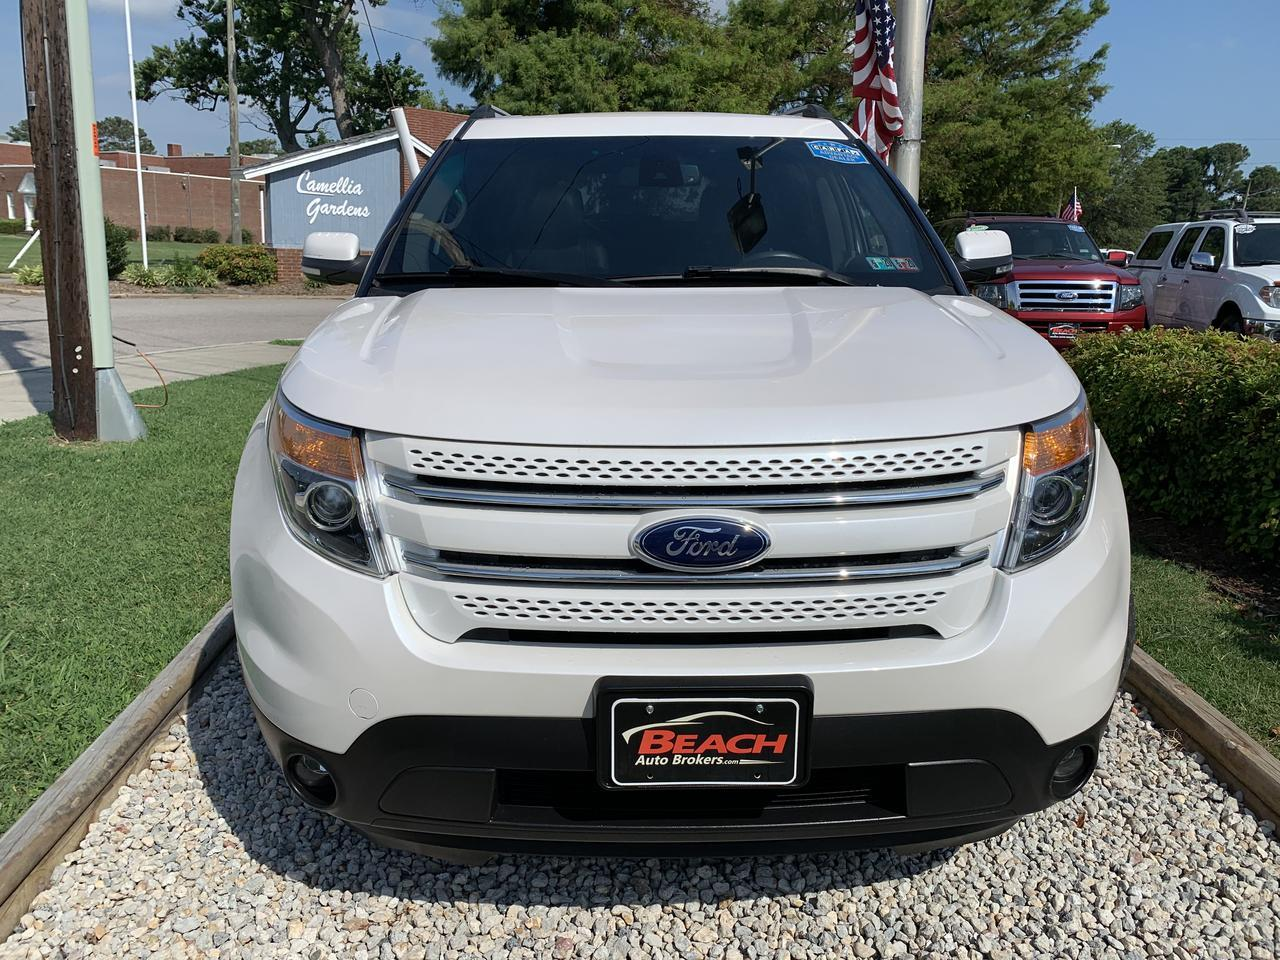 2015 FORD EXPLORER LIMITED 4X4, WARRANTY, LEATHER, SUNROOF, NAV, HEATED SEATS, 3RD ROW, CLEAN CARFAX! Norfolk VA